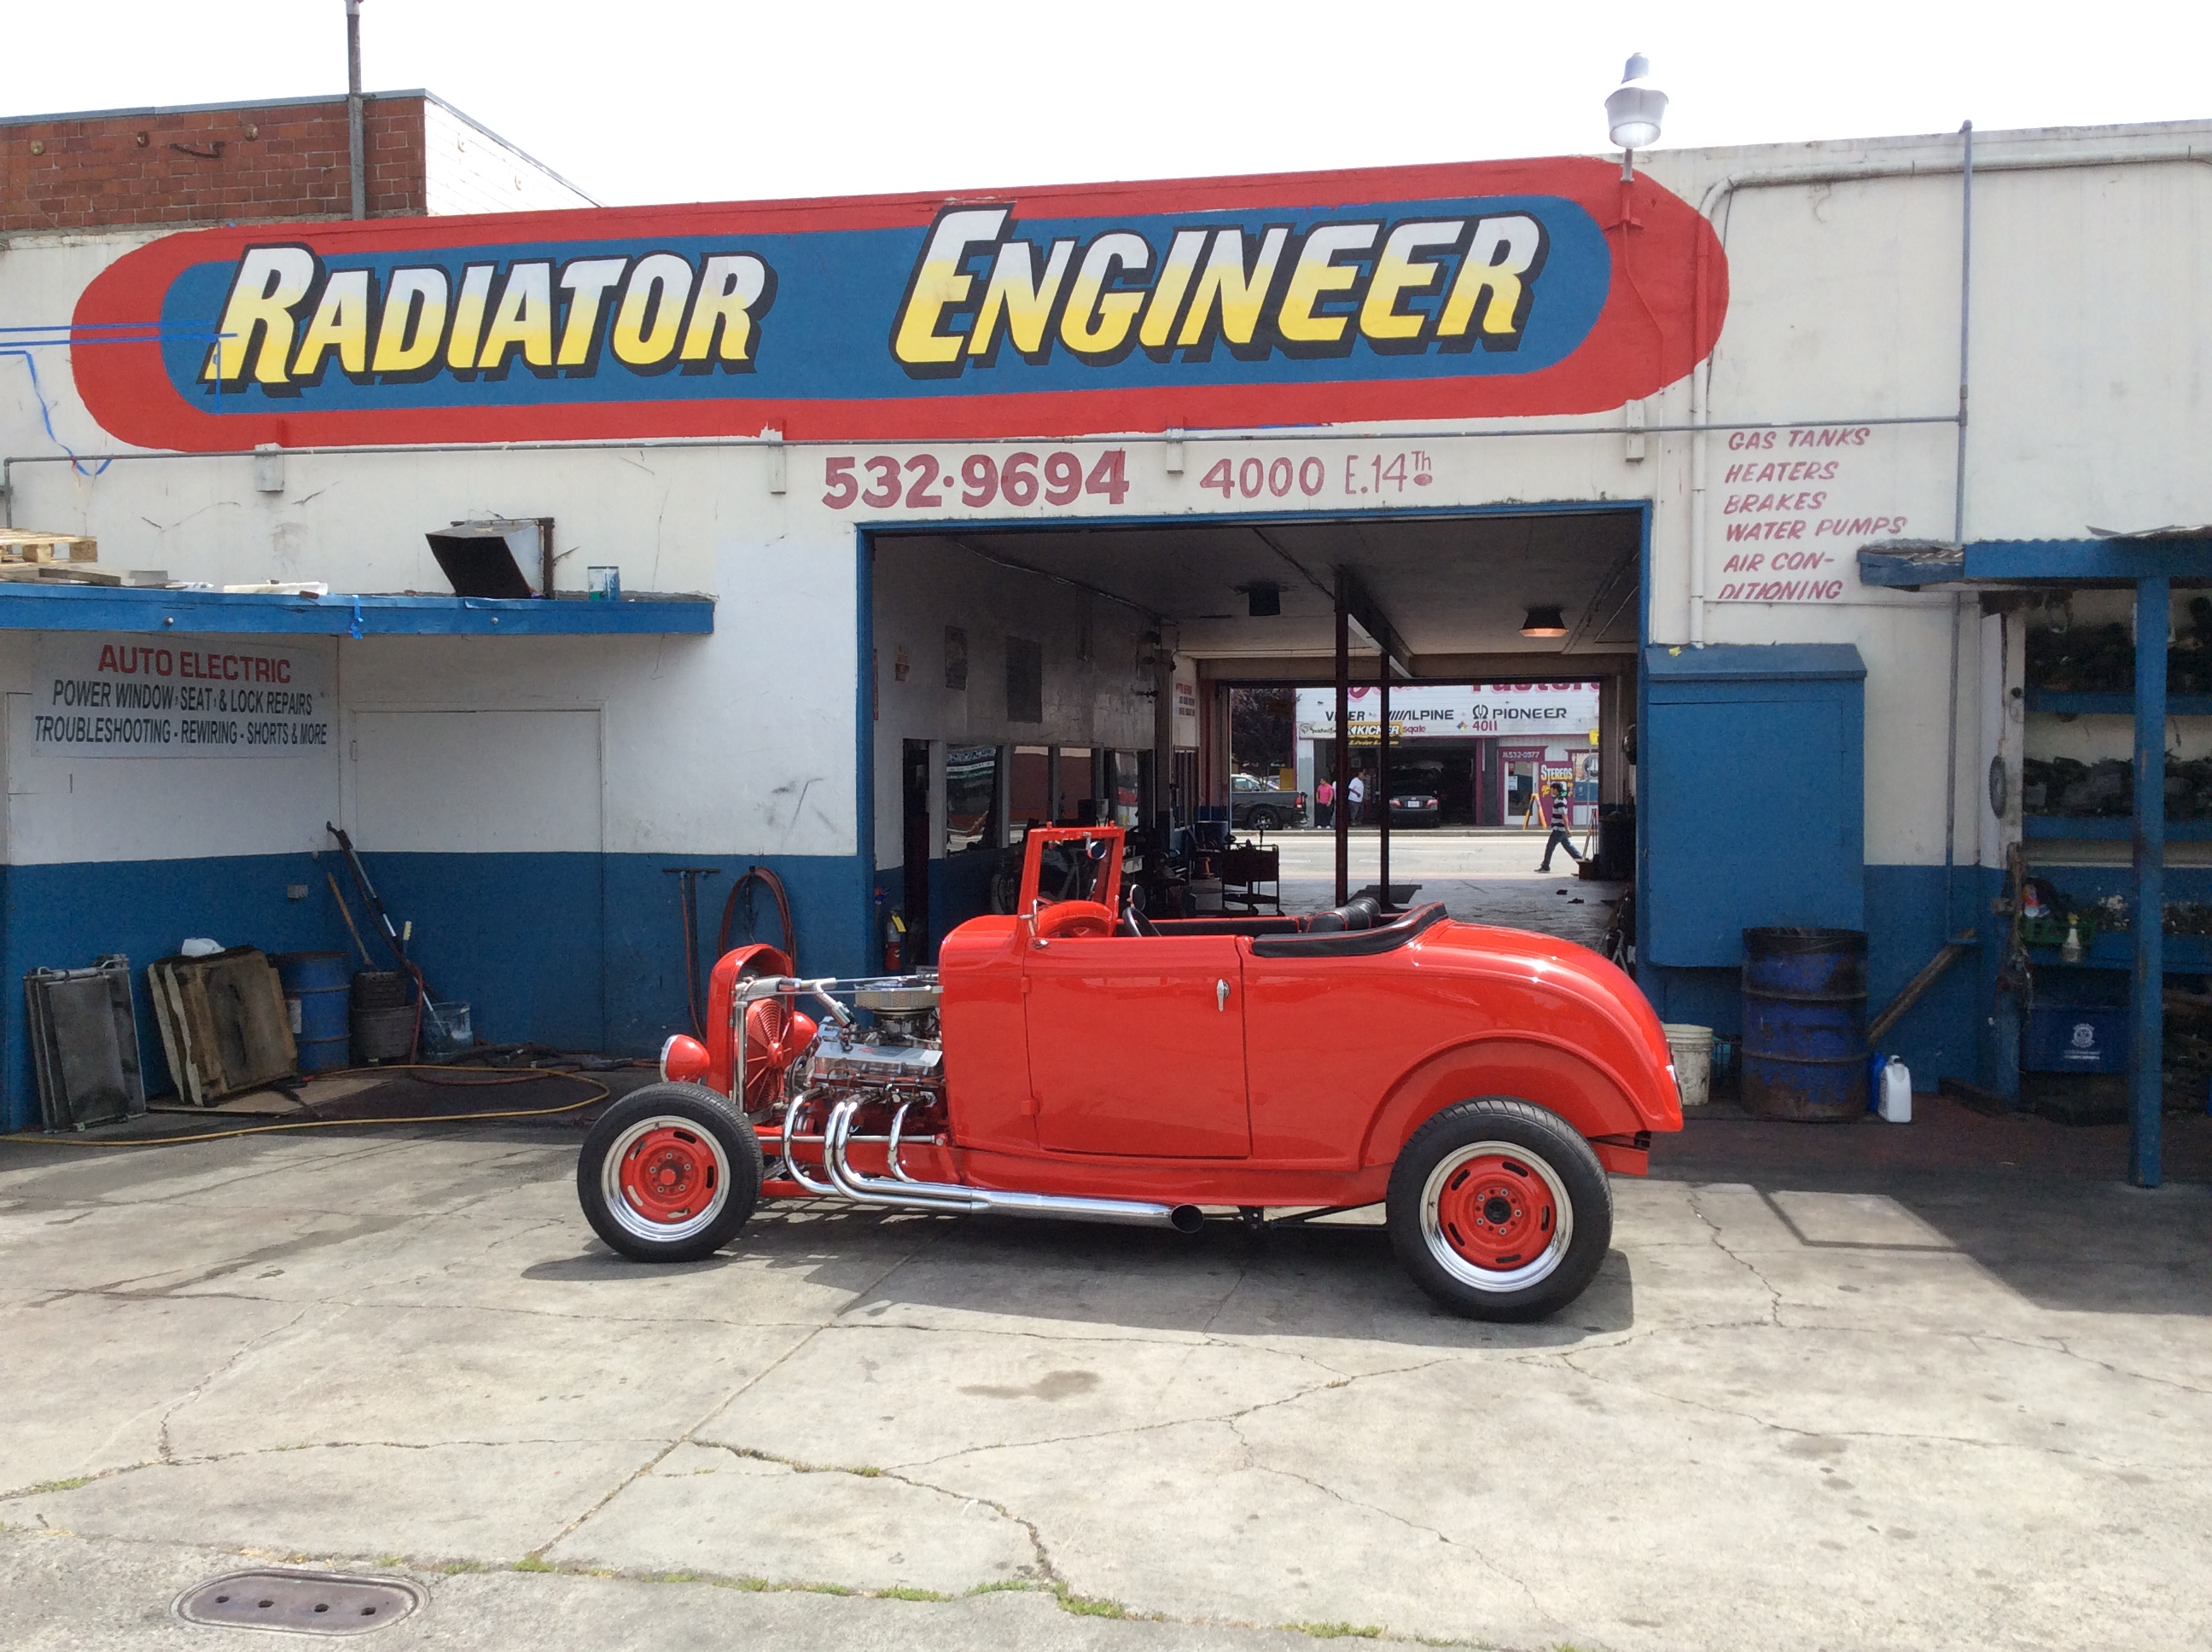 Radiator Engineer